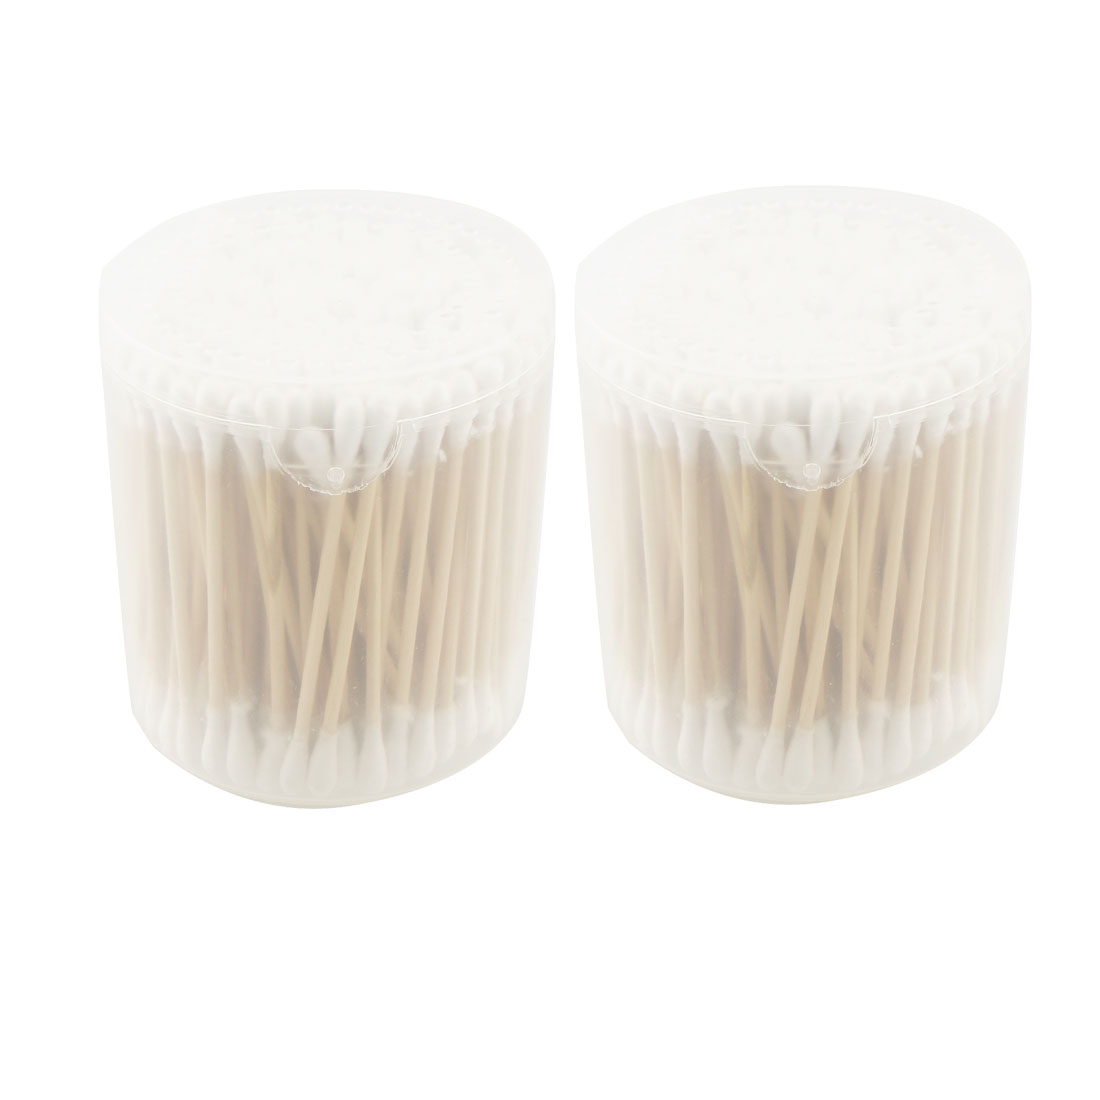 360 Pcs Wood Rod White Double Ended Cotton Buds w Round Box